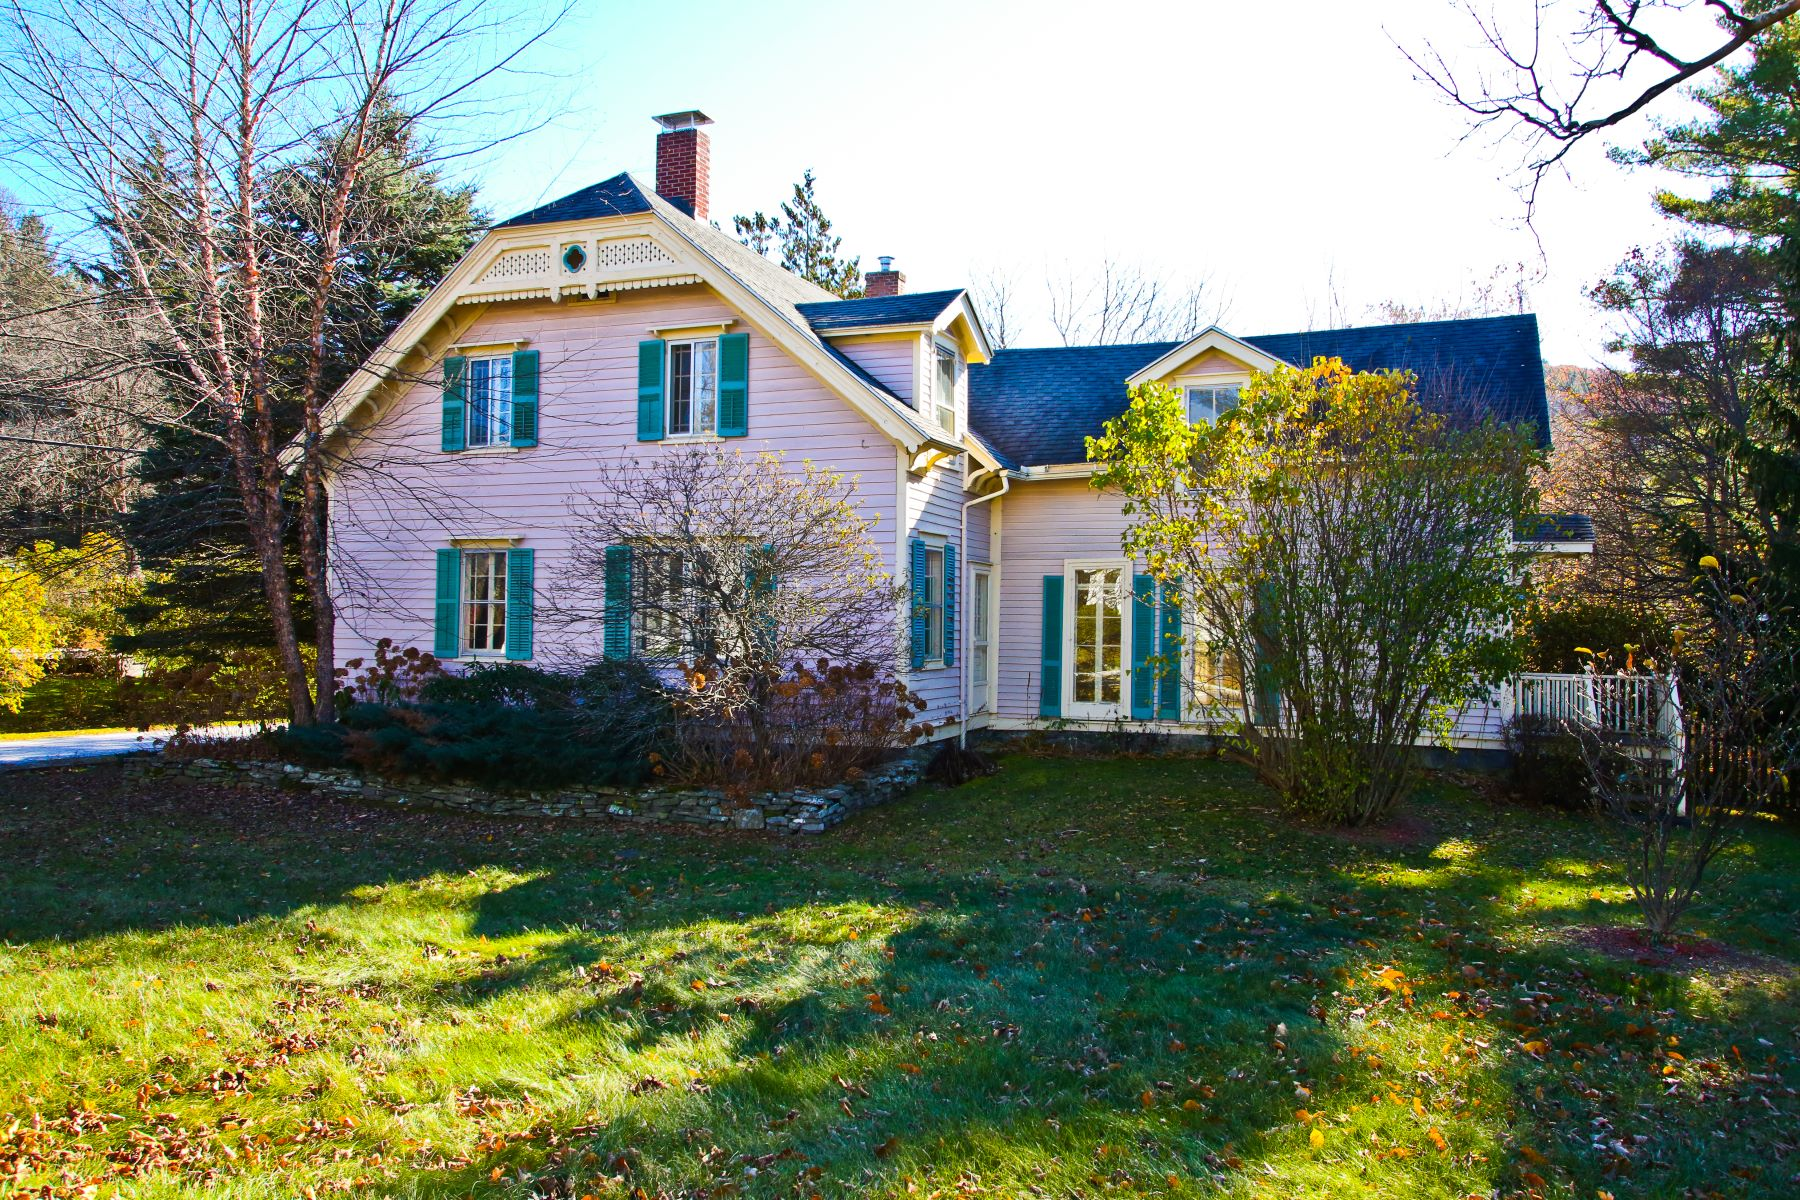 Villa per Vendita alle ore Victorian with Separate Guest Quarters 74 East Main St Stockbridge, Massachusetts 01262 Stati Uniti